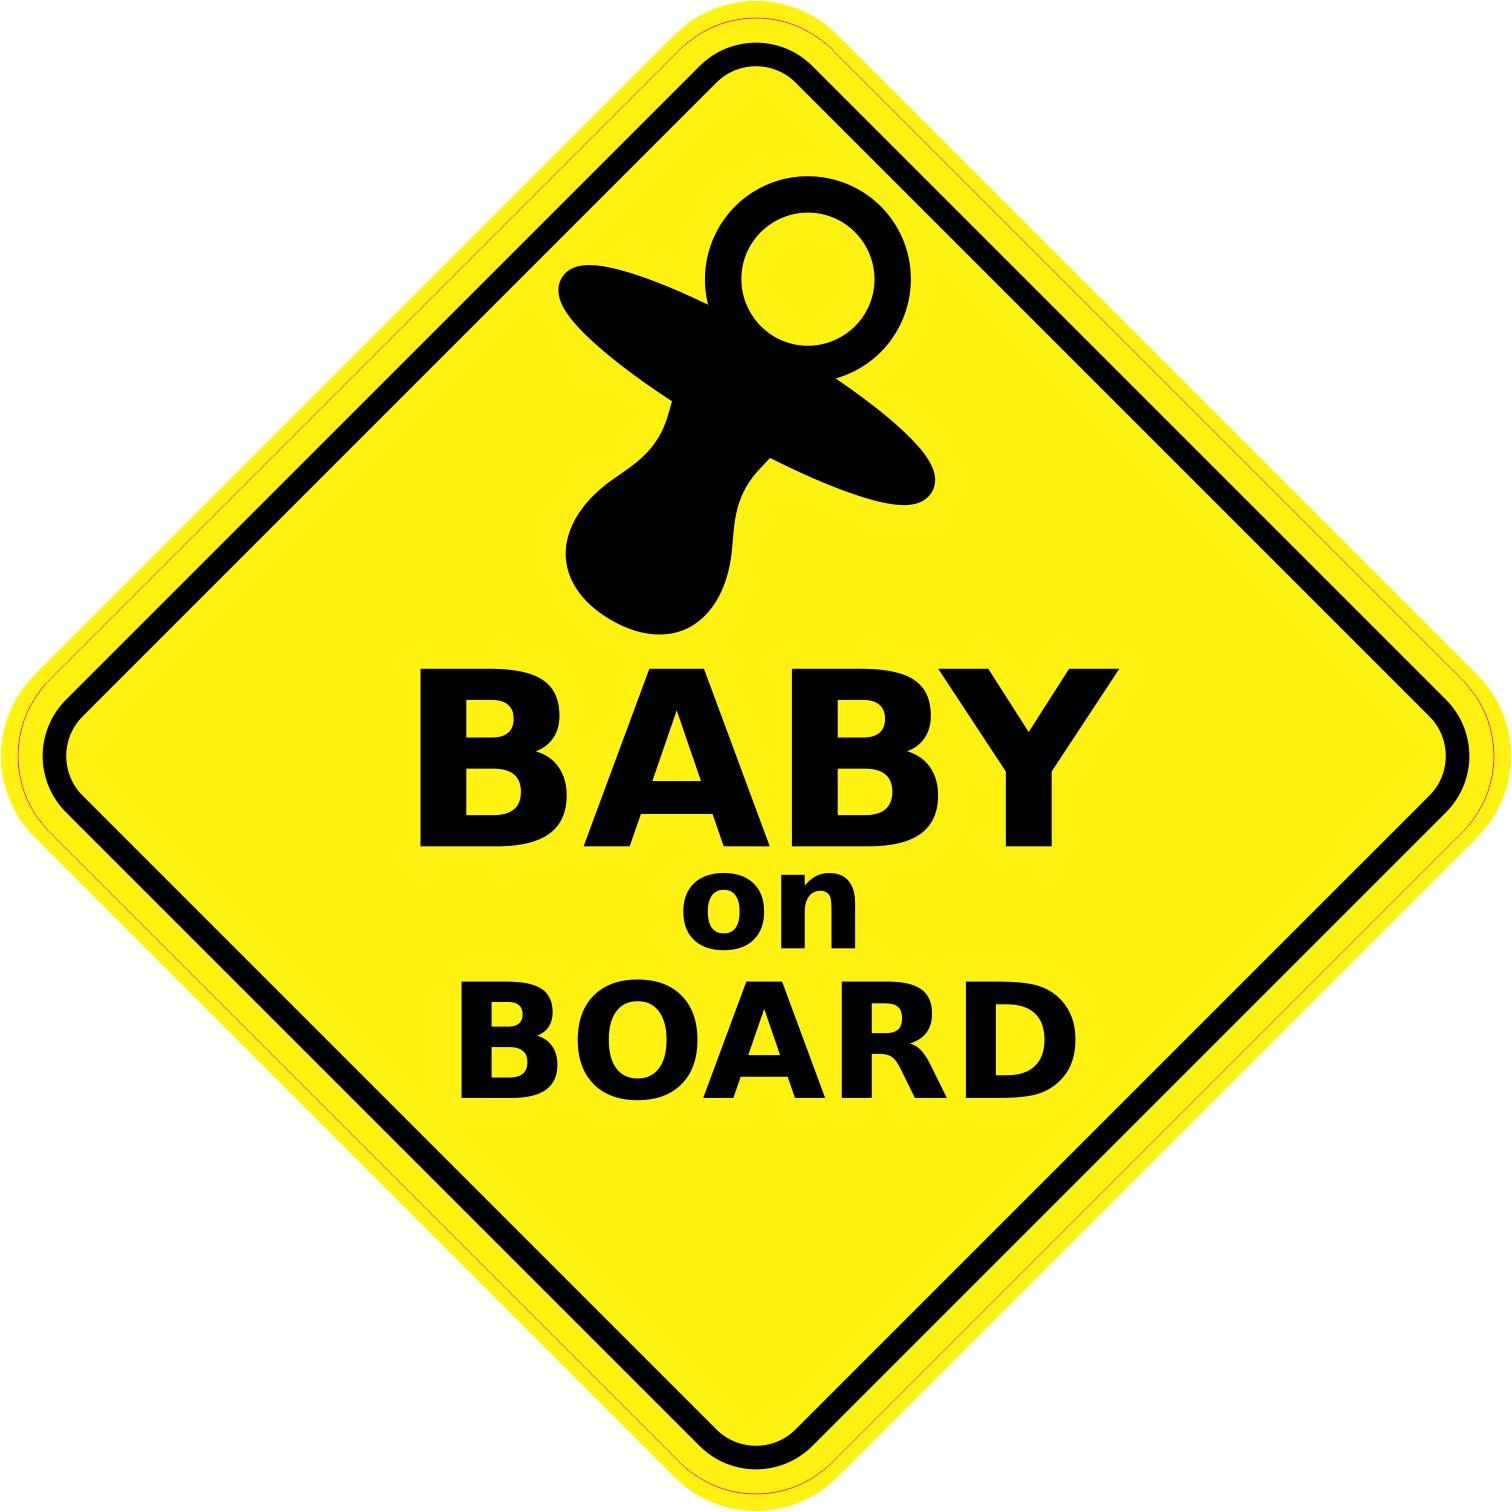 5in X 5in Baby On Board Magnet Magnetic Vehicle Sign. Special Friend Logo. Magic Wall Stickers. Tattoo Outline Lettering. French Reward Stickers. Delirium Signs. Miosis Signs. Car Club Stickers. Pontomedullary Signs